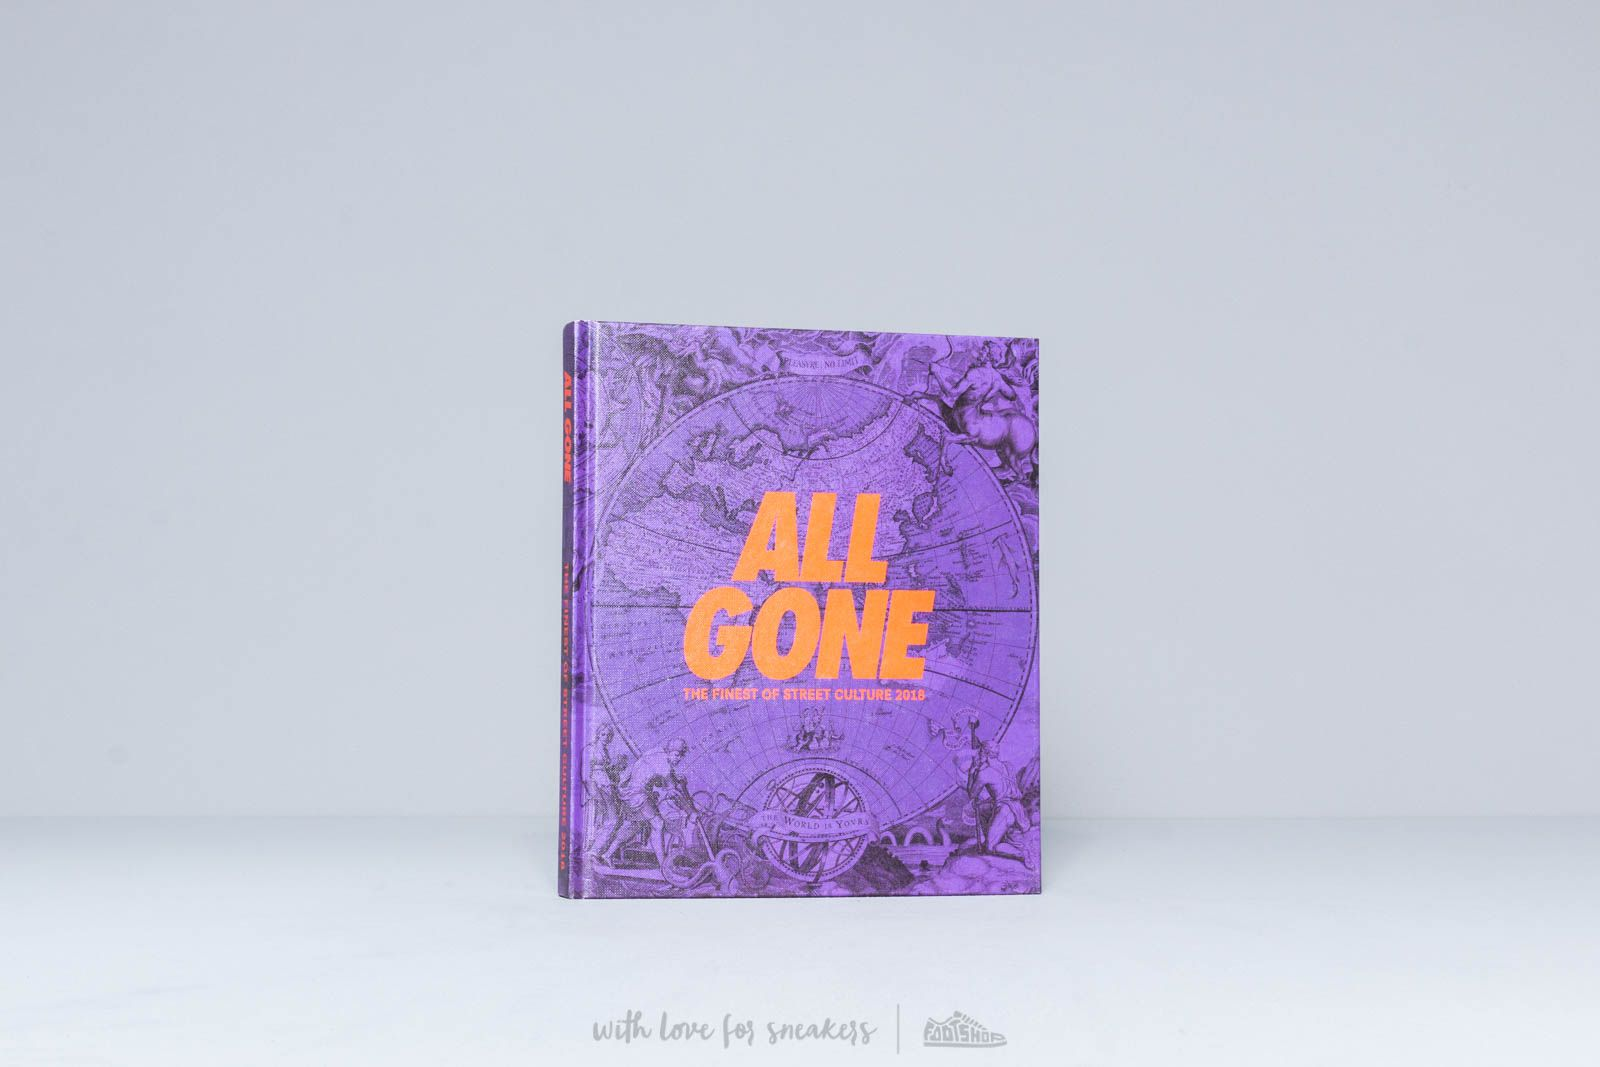 All Gone The Finest Of Street Culture 2018 Purple at a great price $69 buy at Footshop